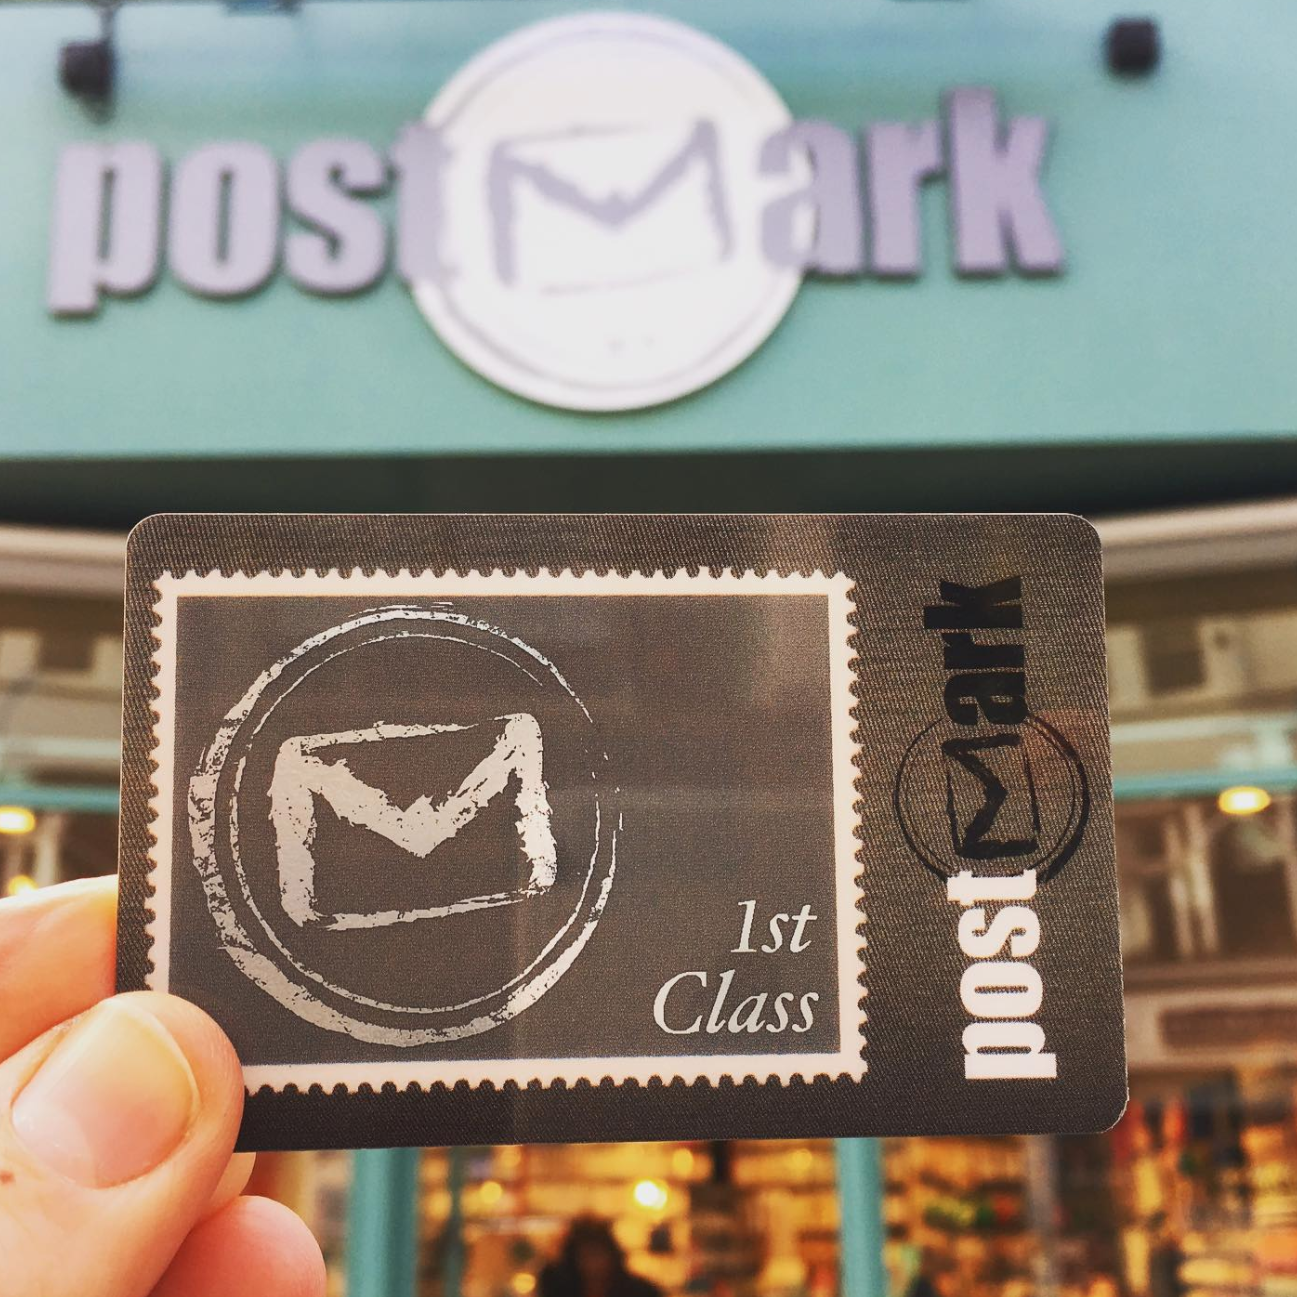 Above: Postmark will be concentrating its efforts online.